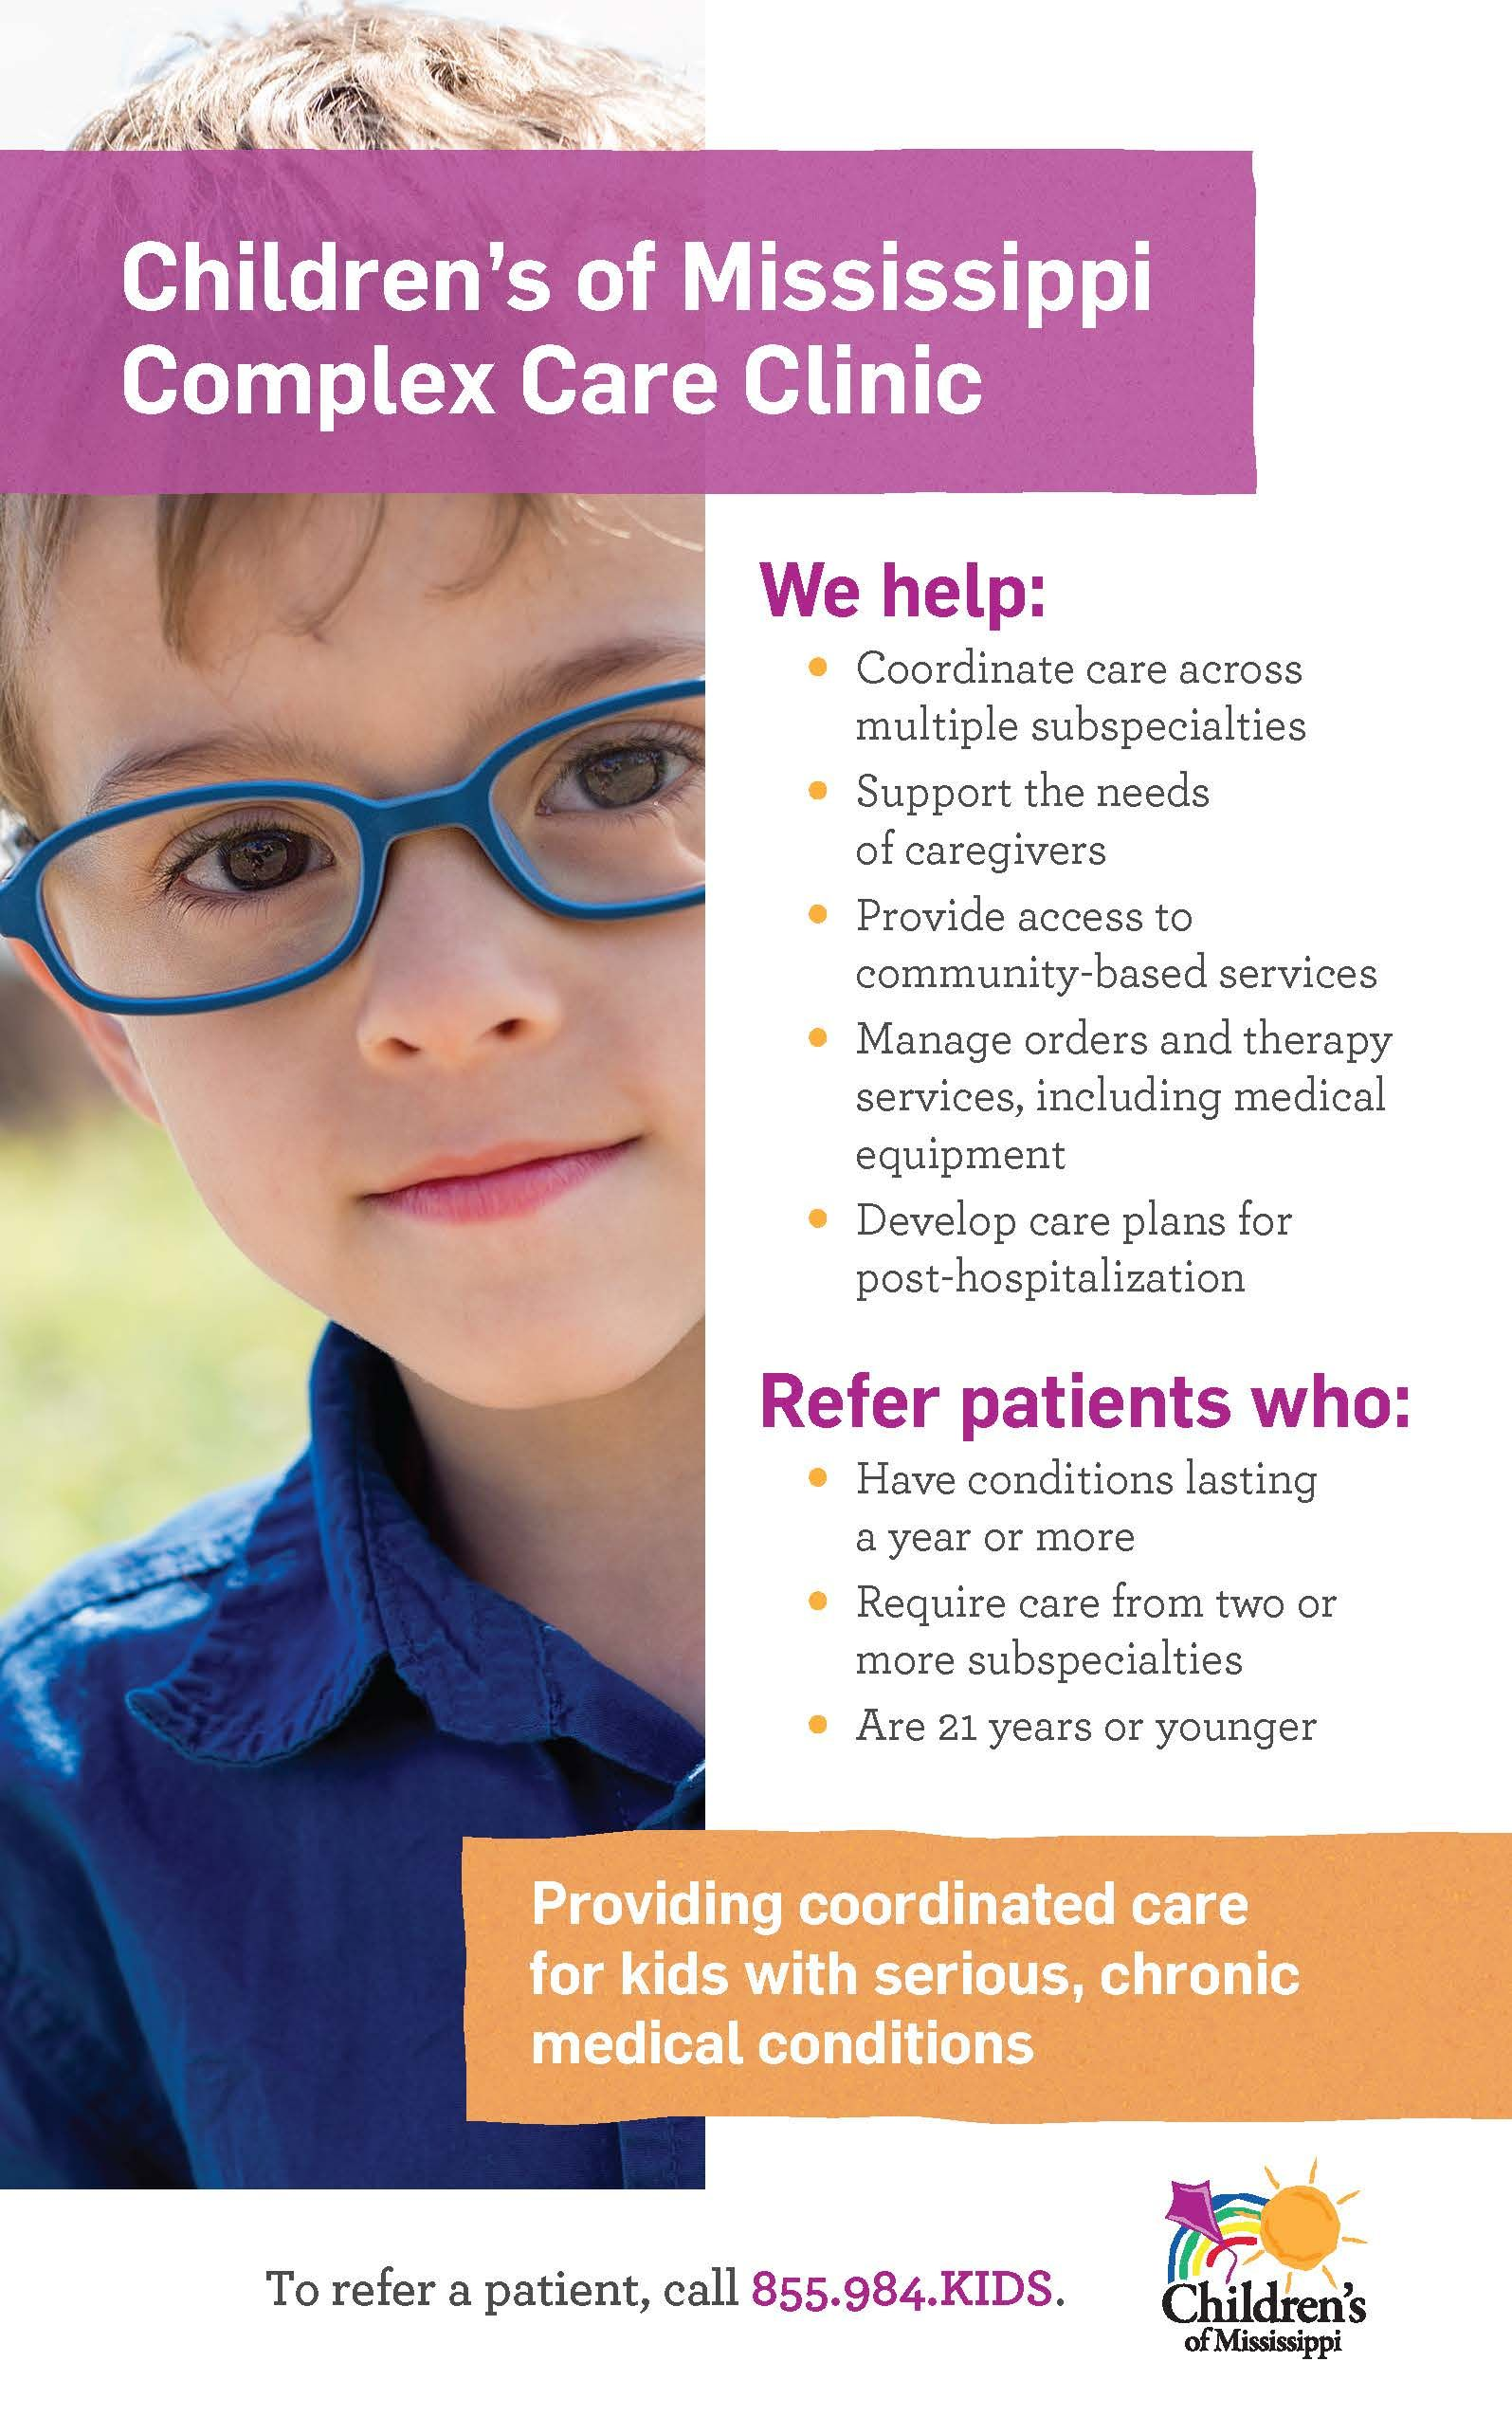 Childrens of mississippi complex care clinic referral